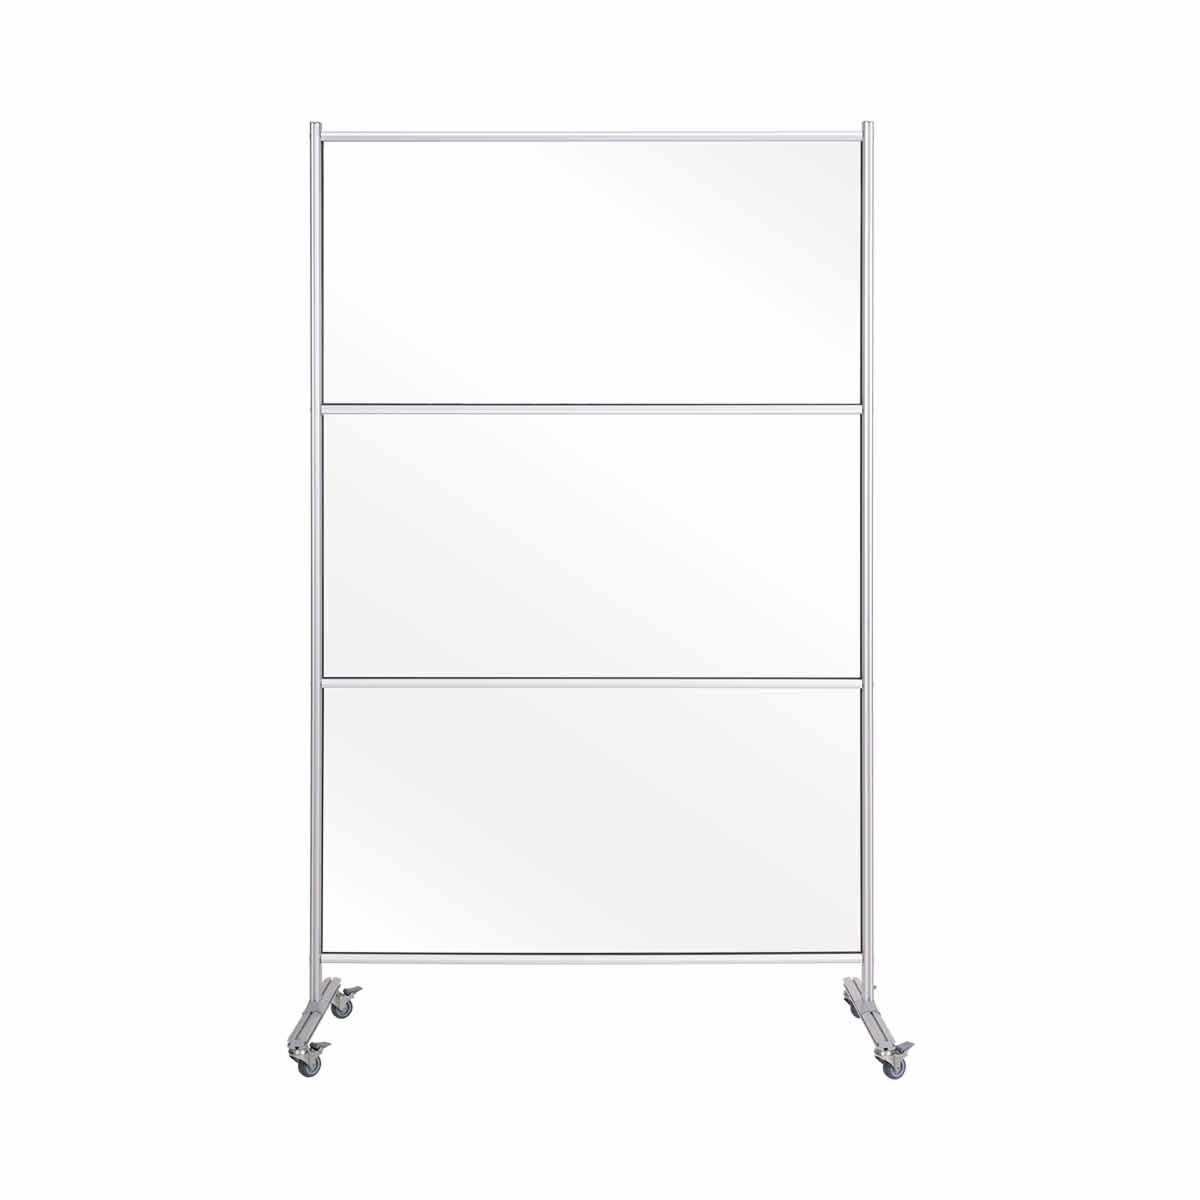 Bi-Office Mobile Stand Glass with Aluminium Frame 120x180 cm